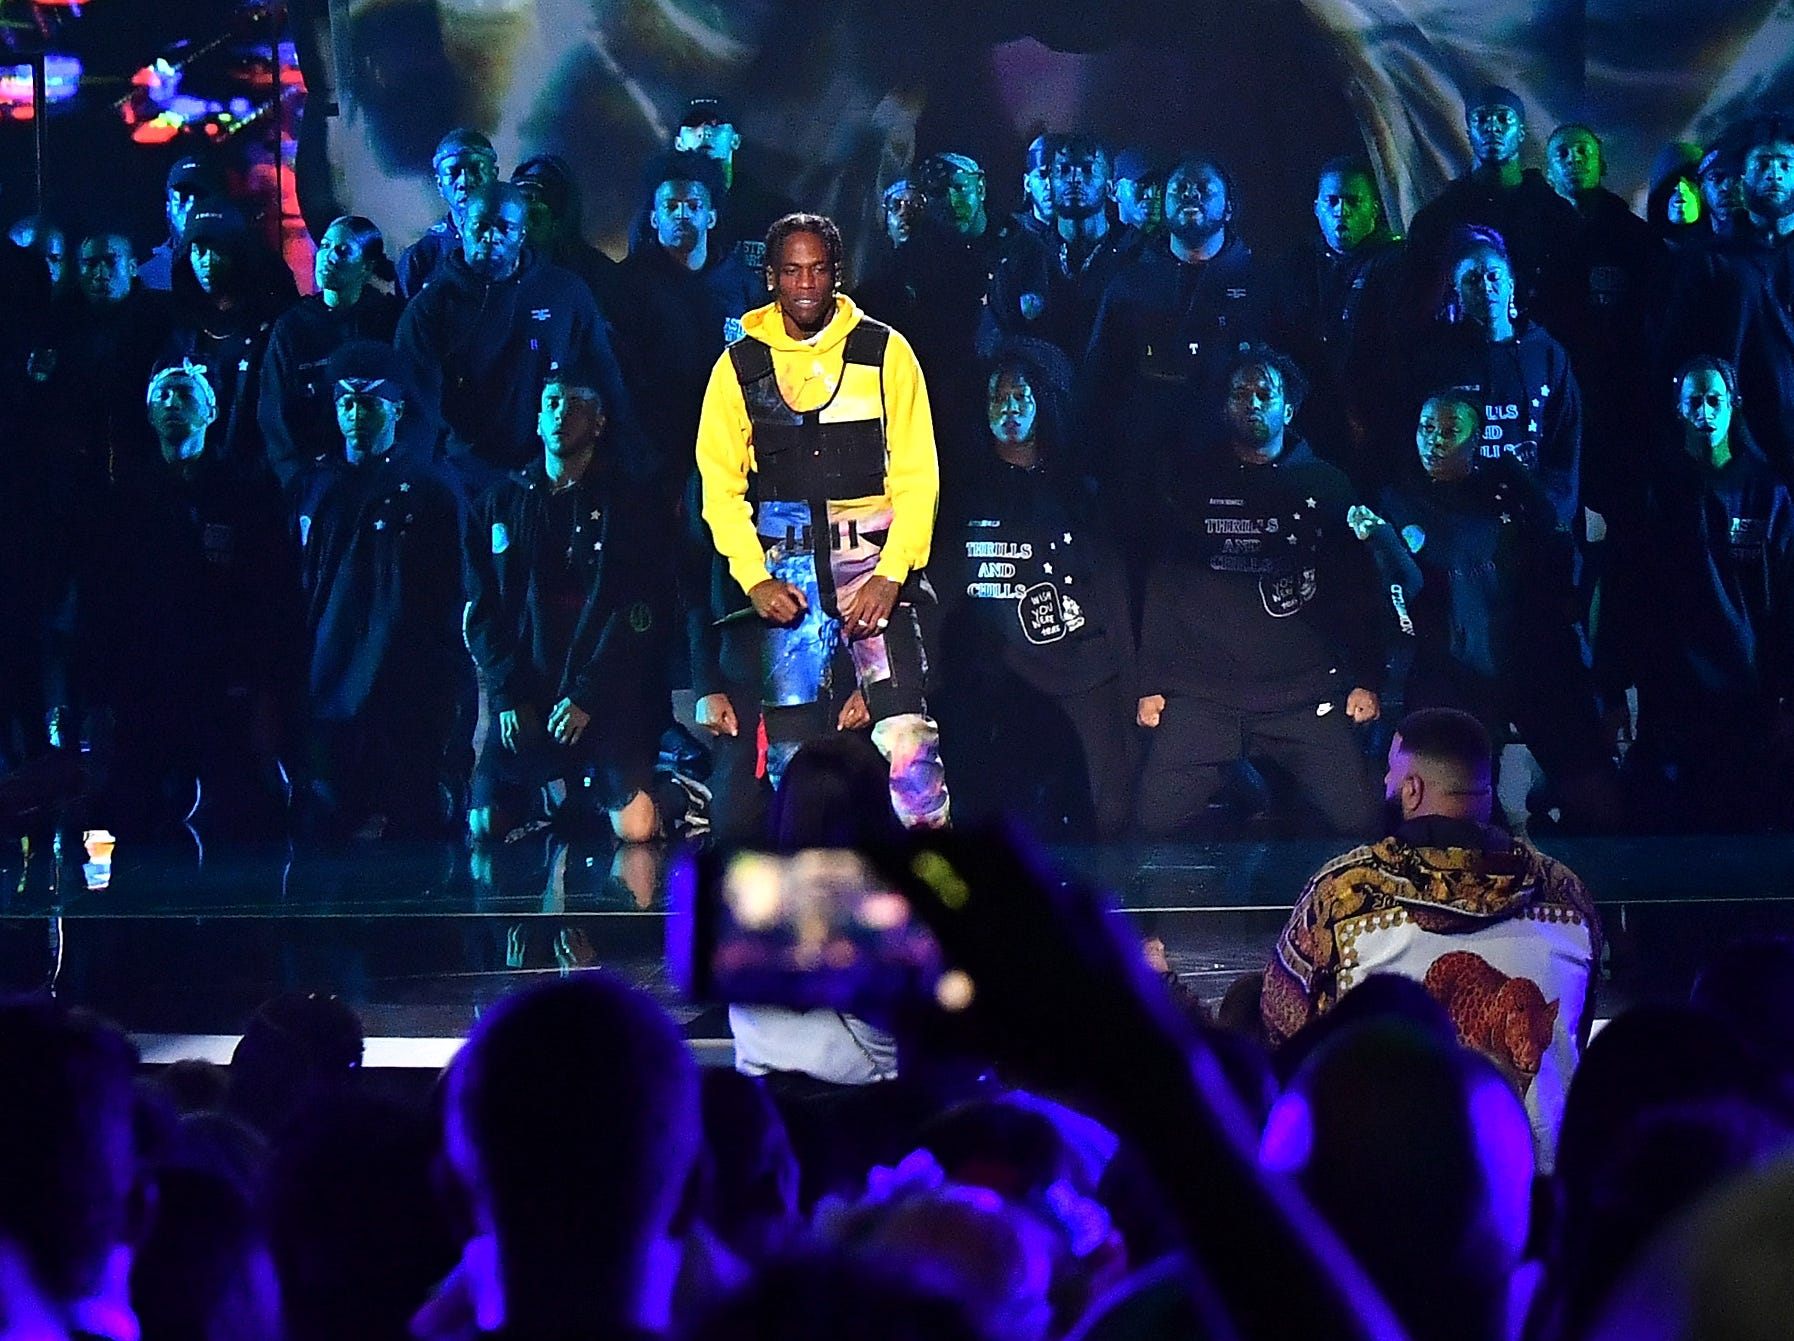 Travis Scott se presenta en el escenario durante los MTV Video Music Awards 2018 en el Radio City Music Hall el 20 de agosto de 2018 en la ciudad de Nueva York.